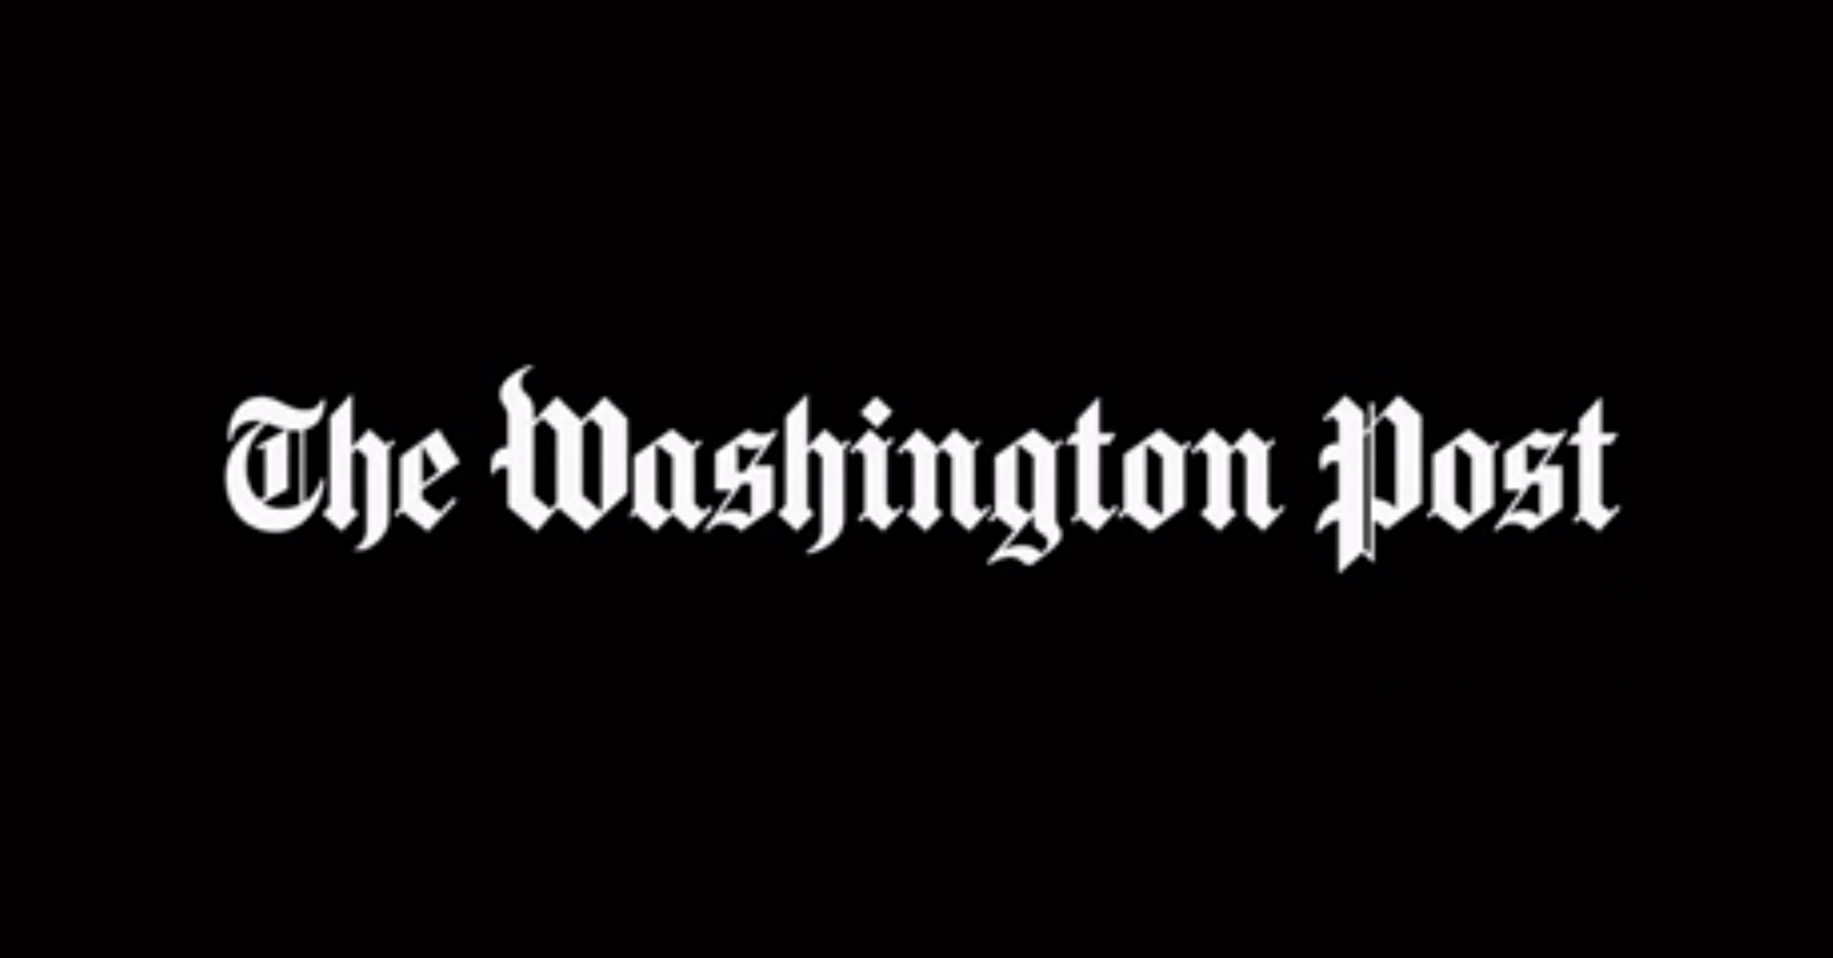 Washington Post Brushes Off Clinton Email Reporting Error Mistakes Are Made